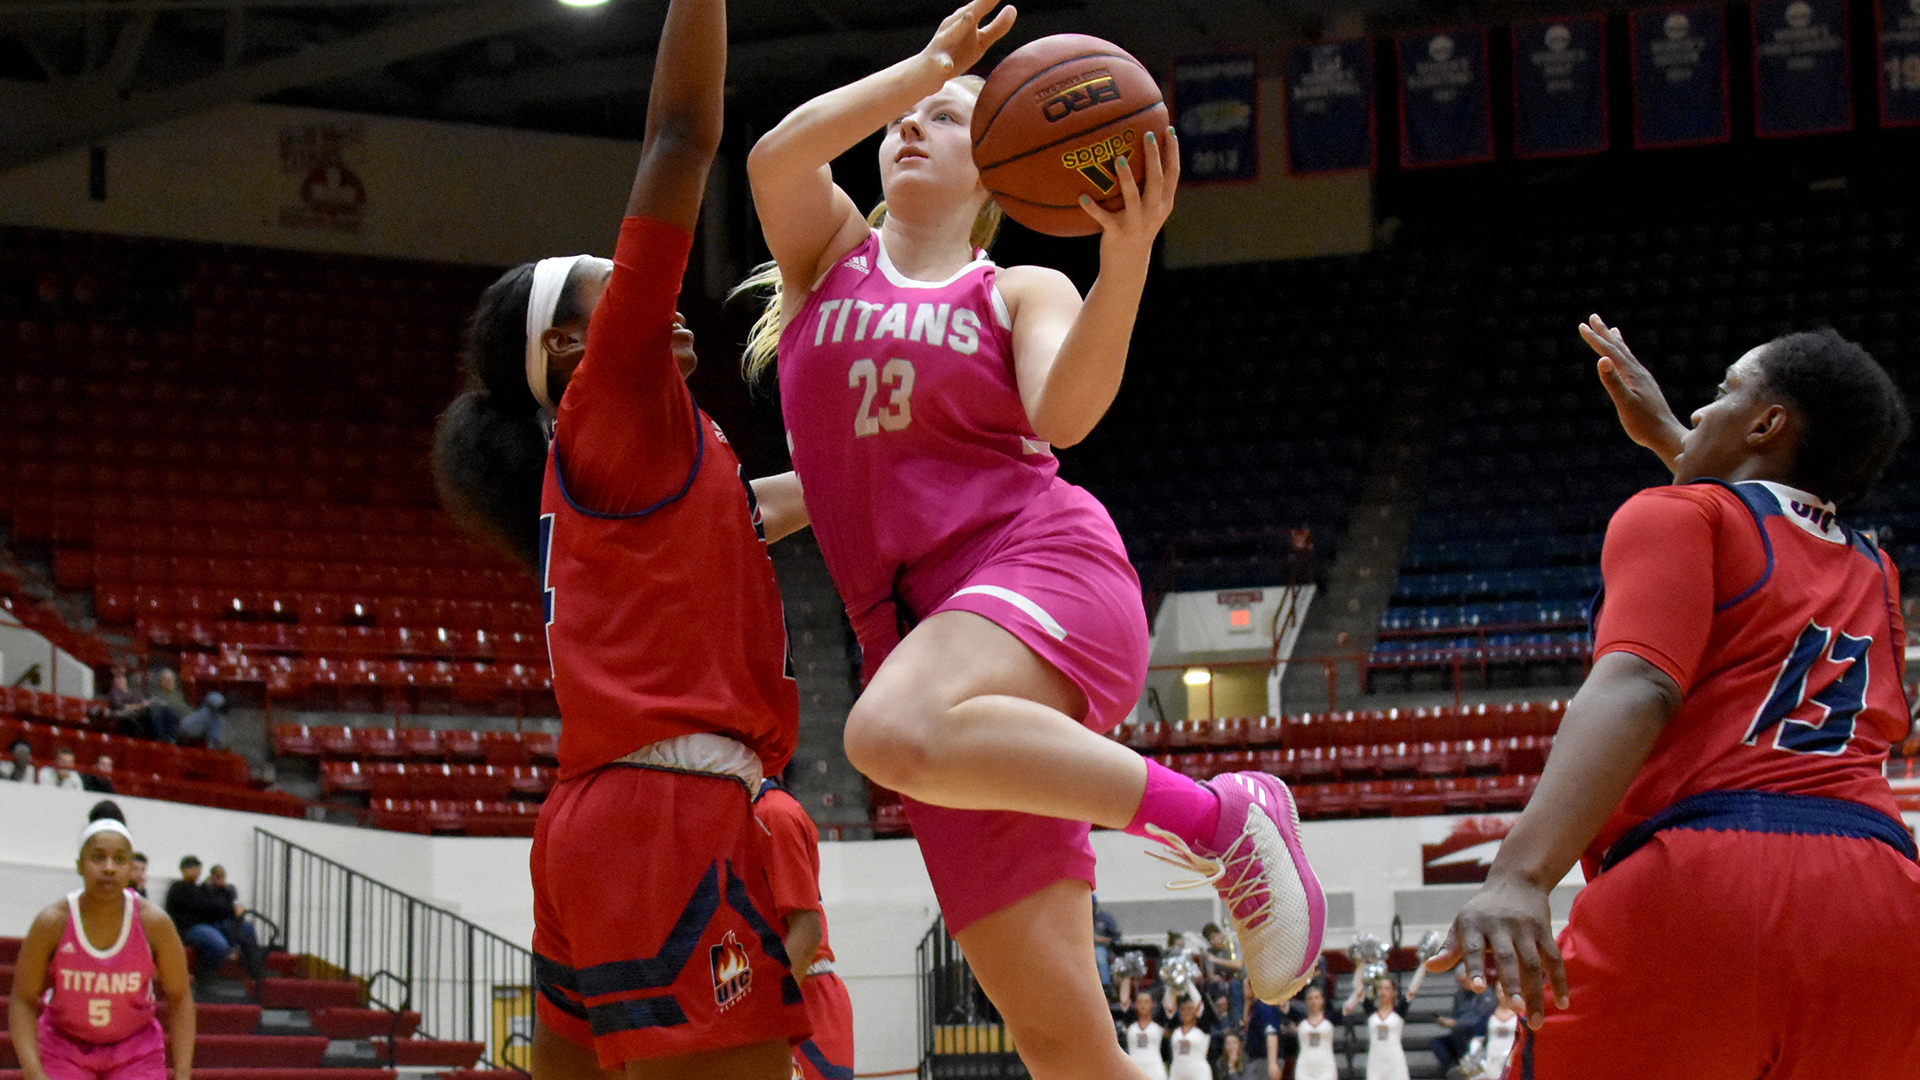 Titans Host Jaguars for Pink Game, National Girls & Women in Sports